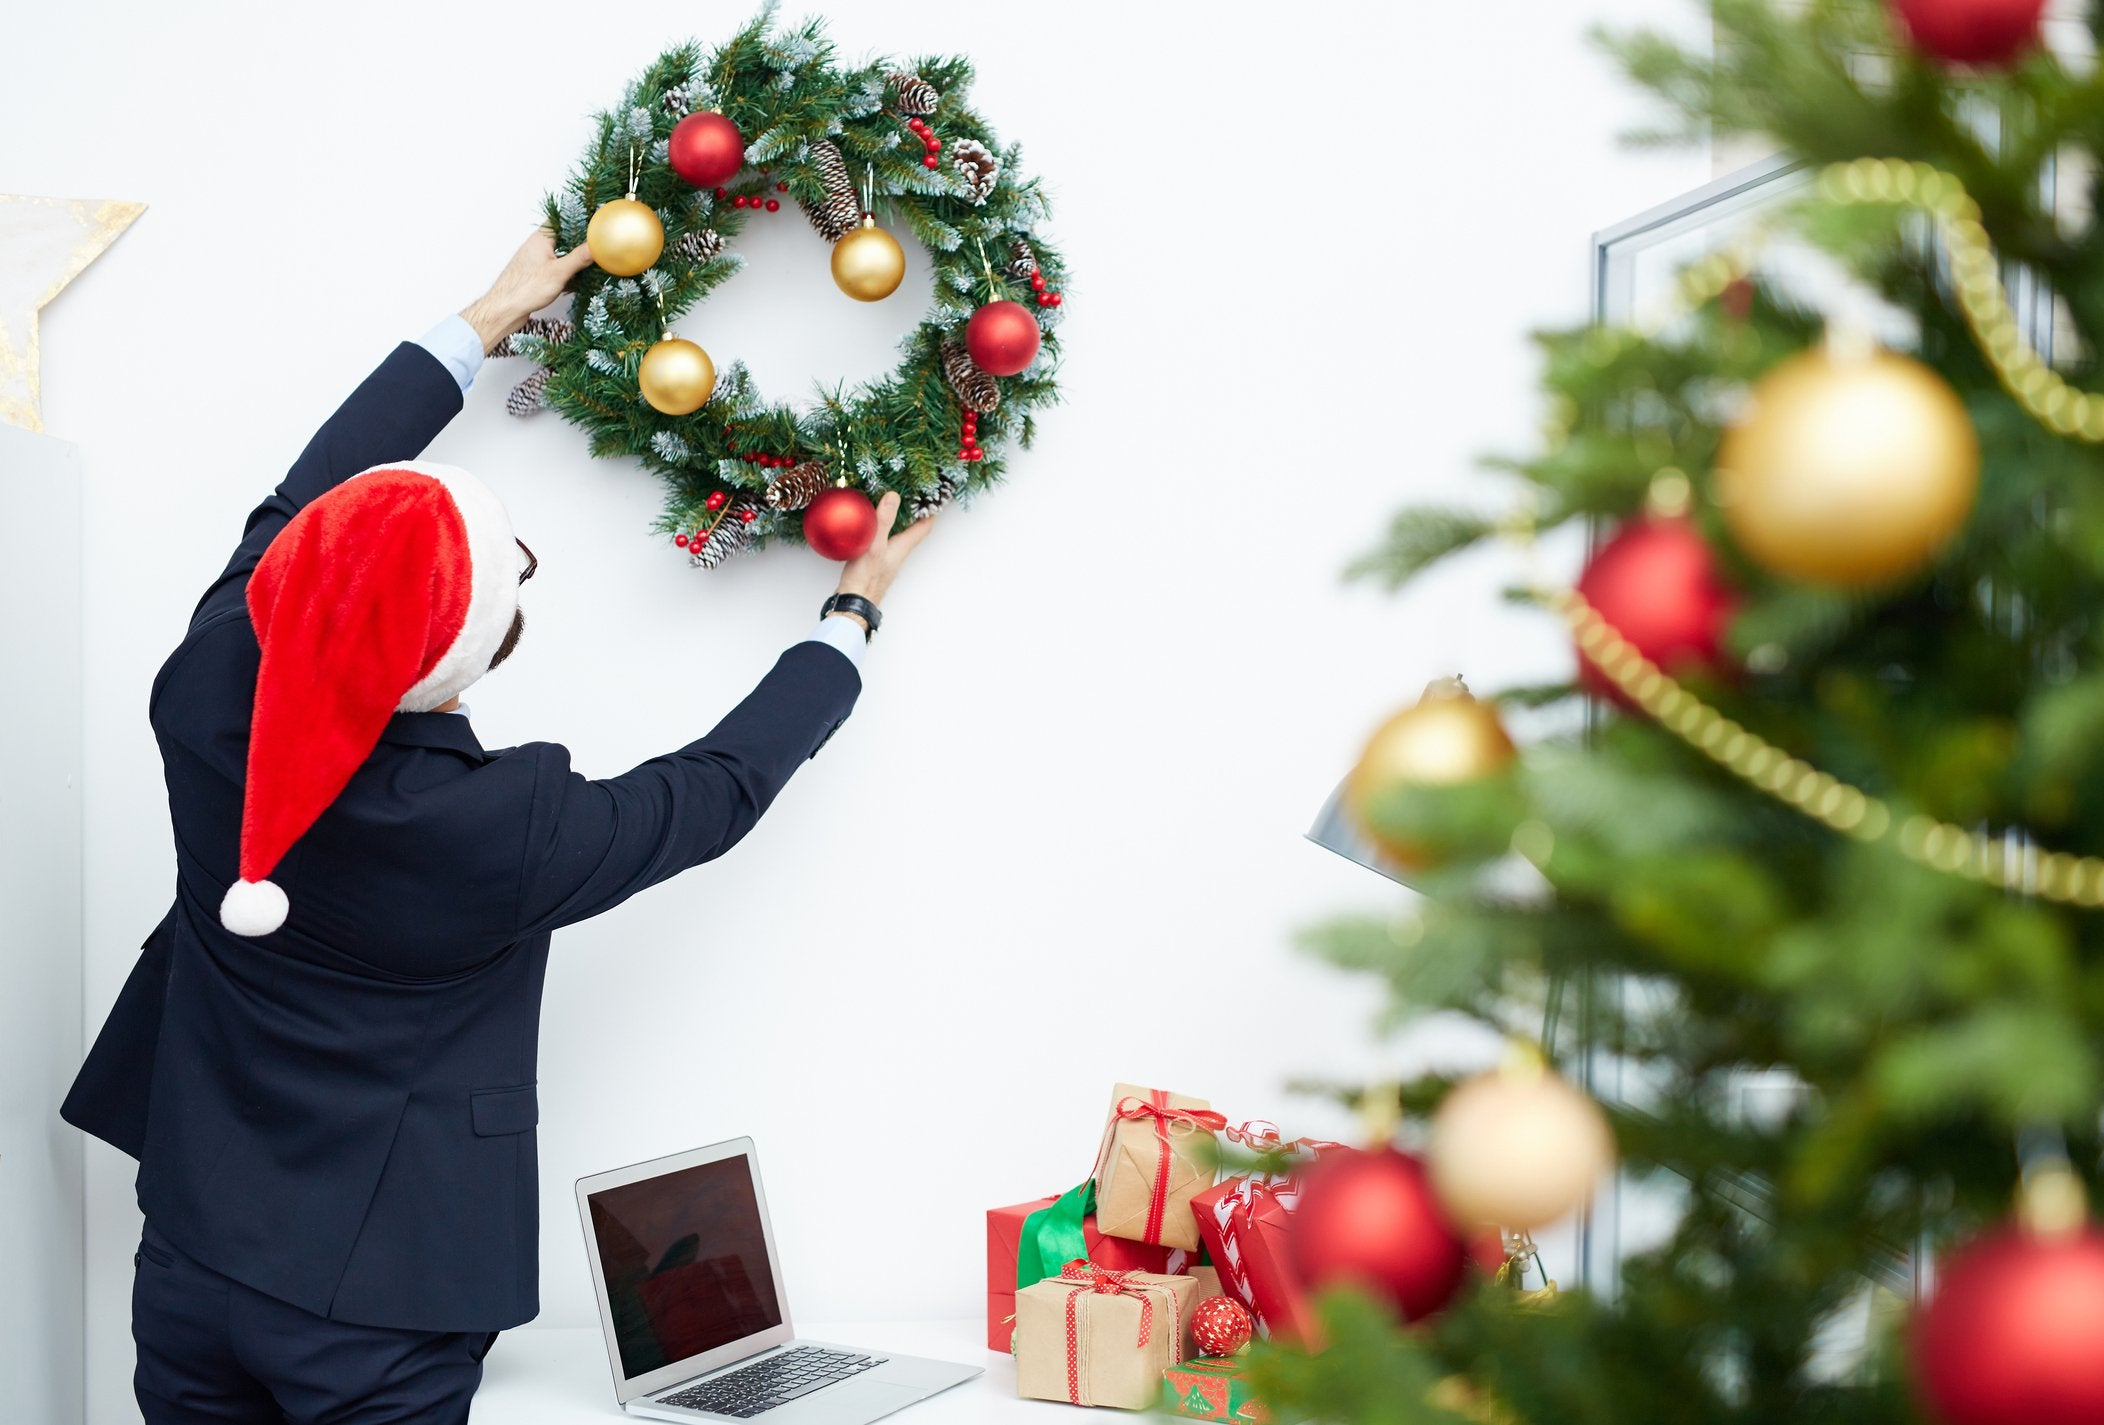 8 Holiday Season Mistakes That Can Hurt You at Work